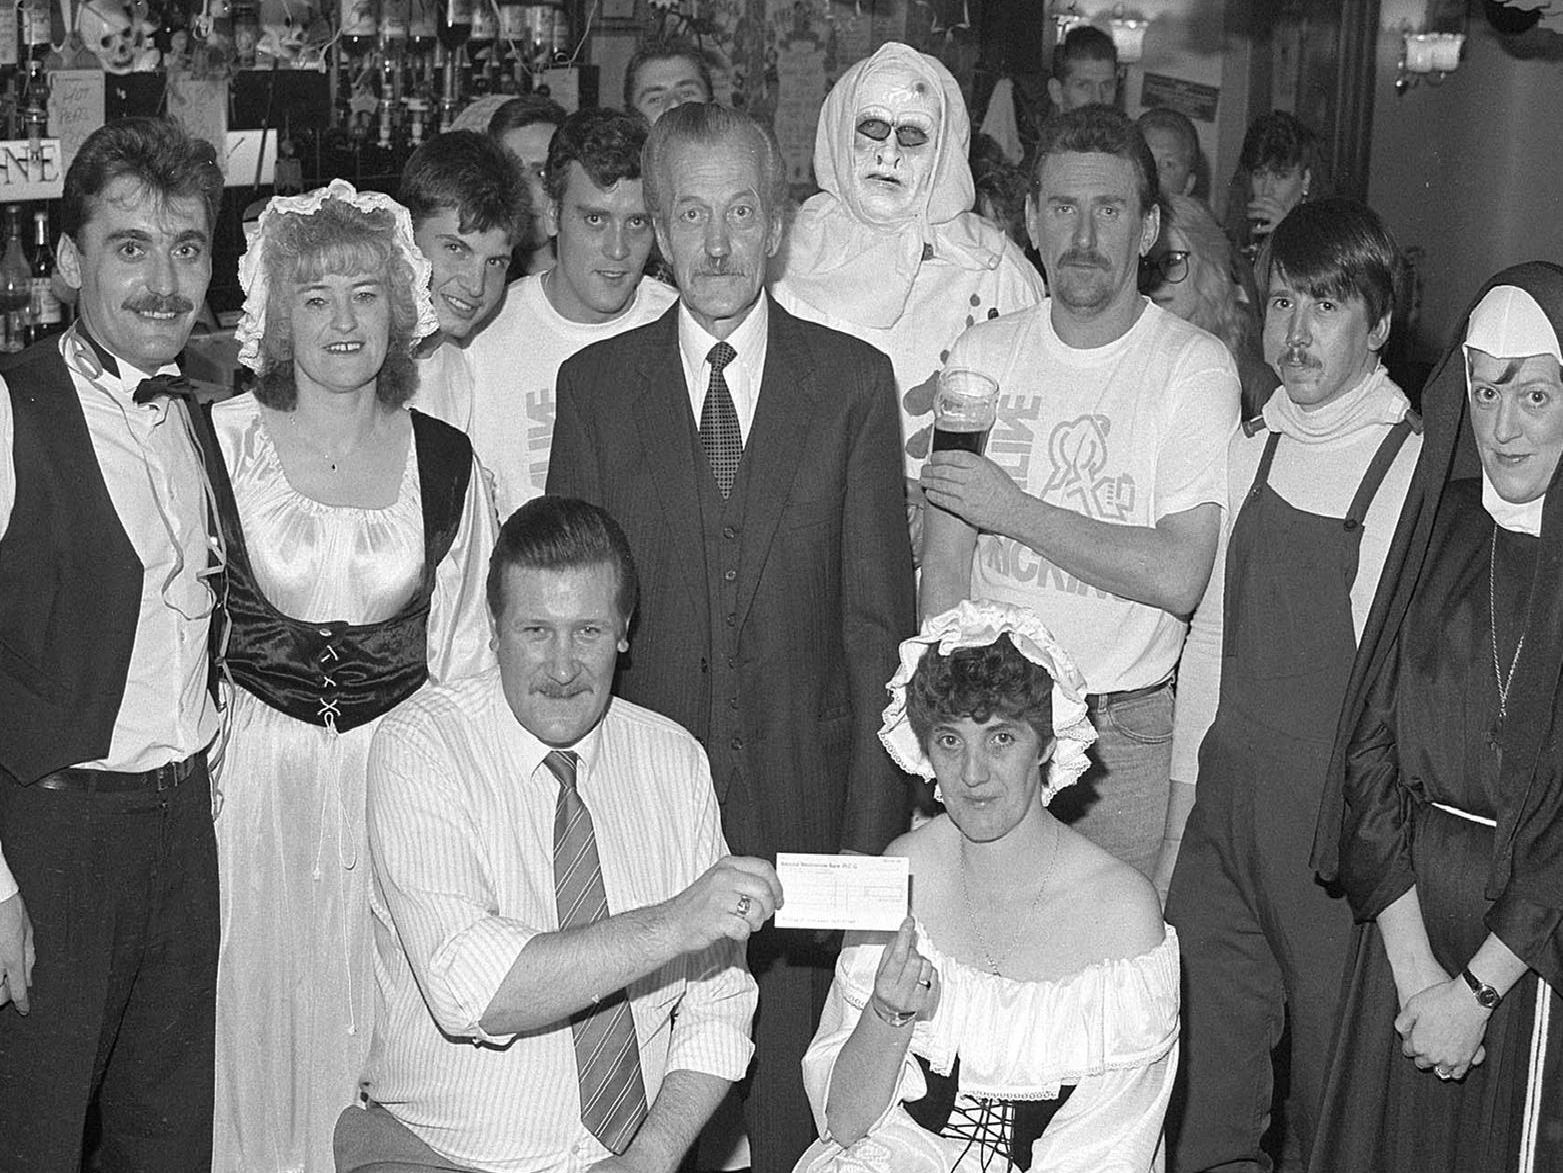 1990: A fabulous nostalgic shot of a charity event held at Cuckoo Birch in Mansfield. Did you attend this event? Maybe you were in the scary costume.